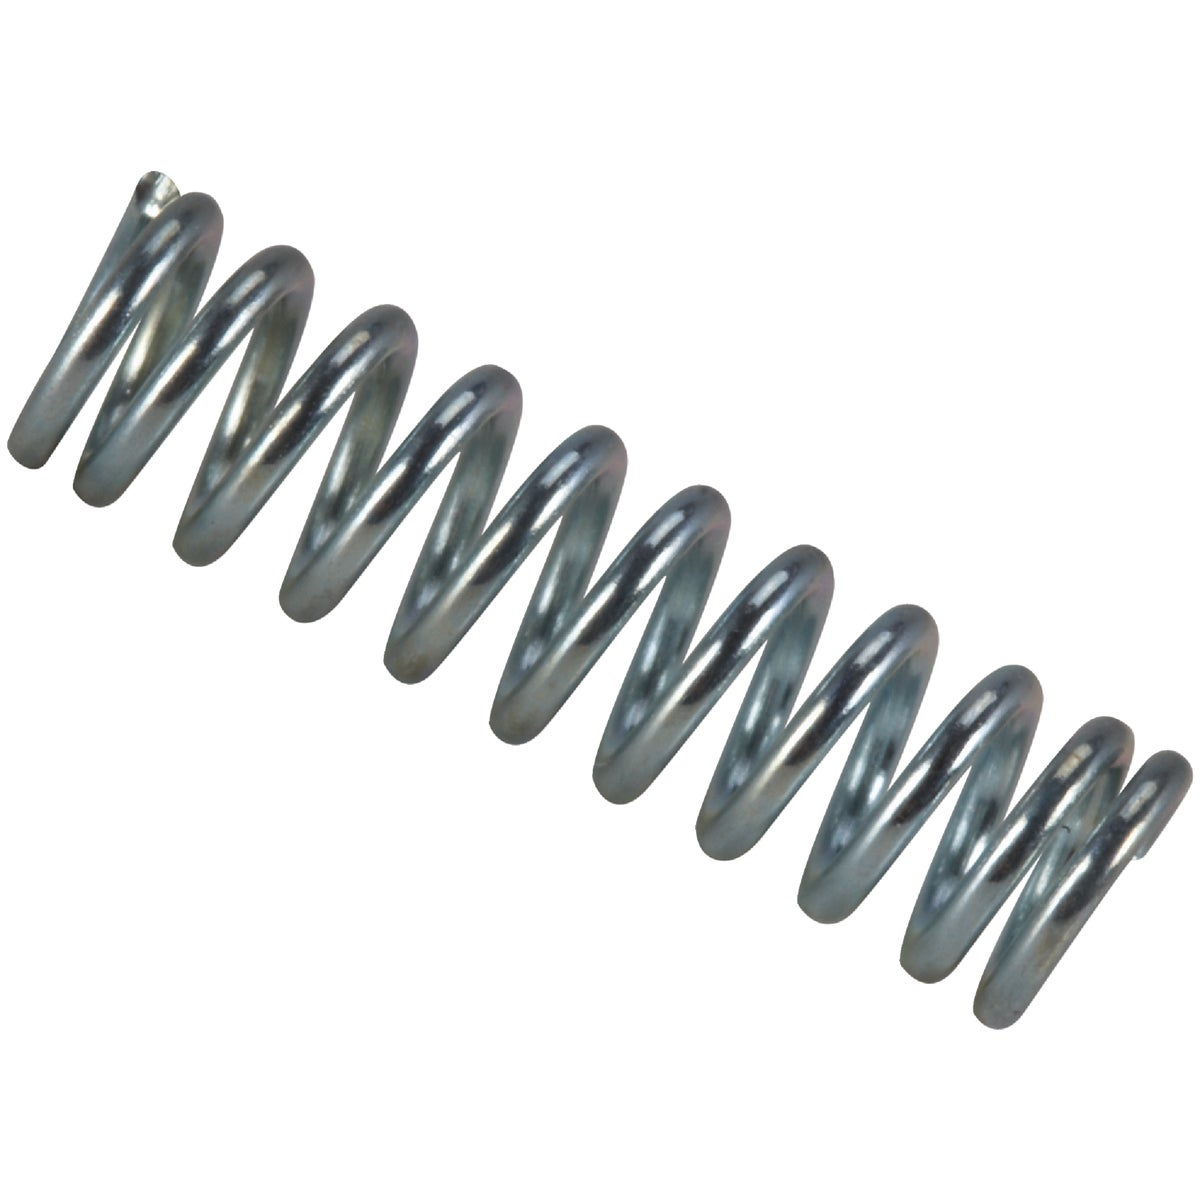 COMPRESSION SPRING - C-832 by Century Spring Corp